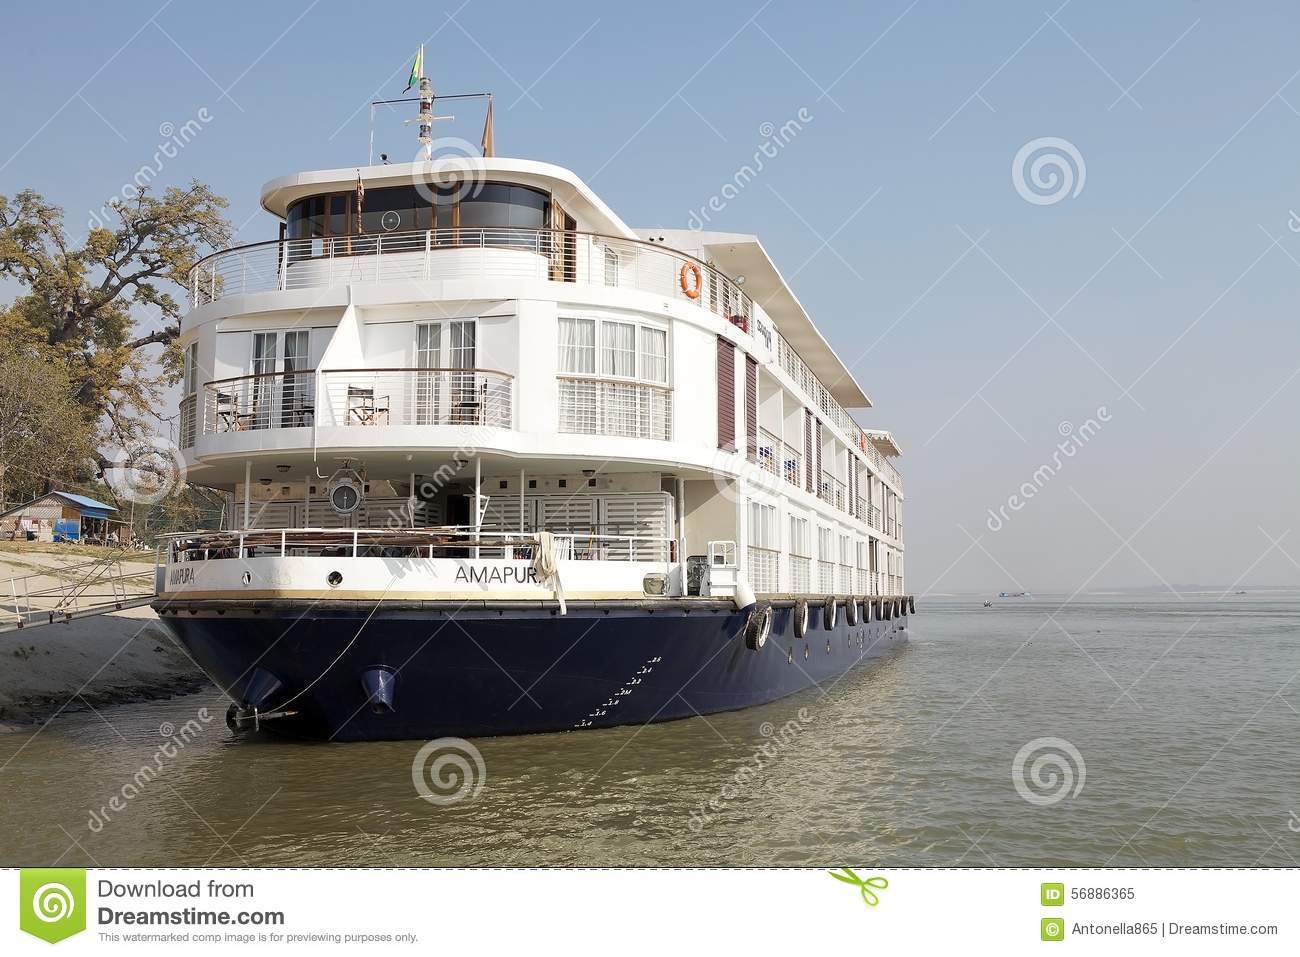 Boat for river cruises on the Irrawaddy river Myanmar